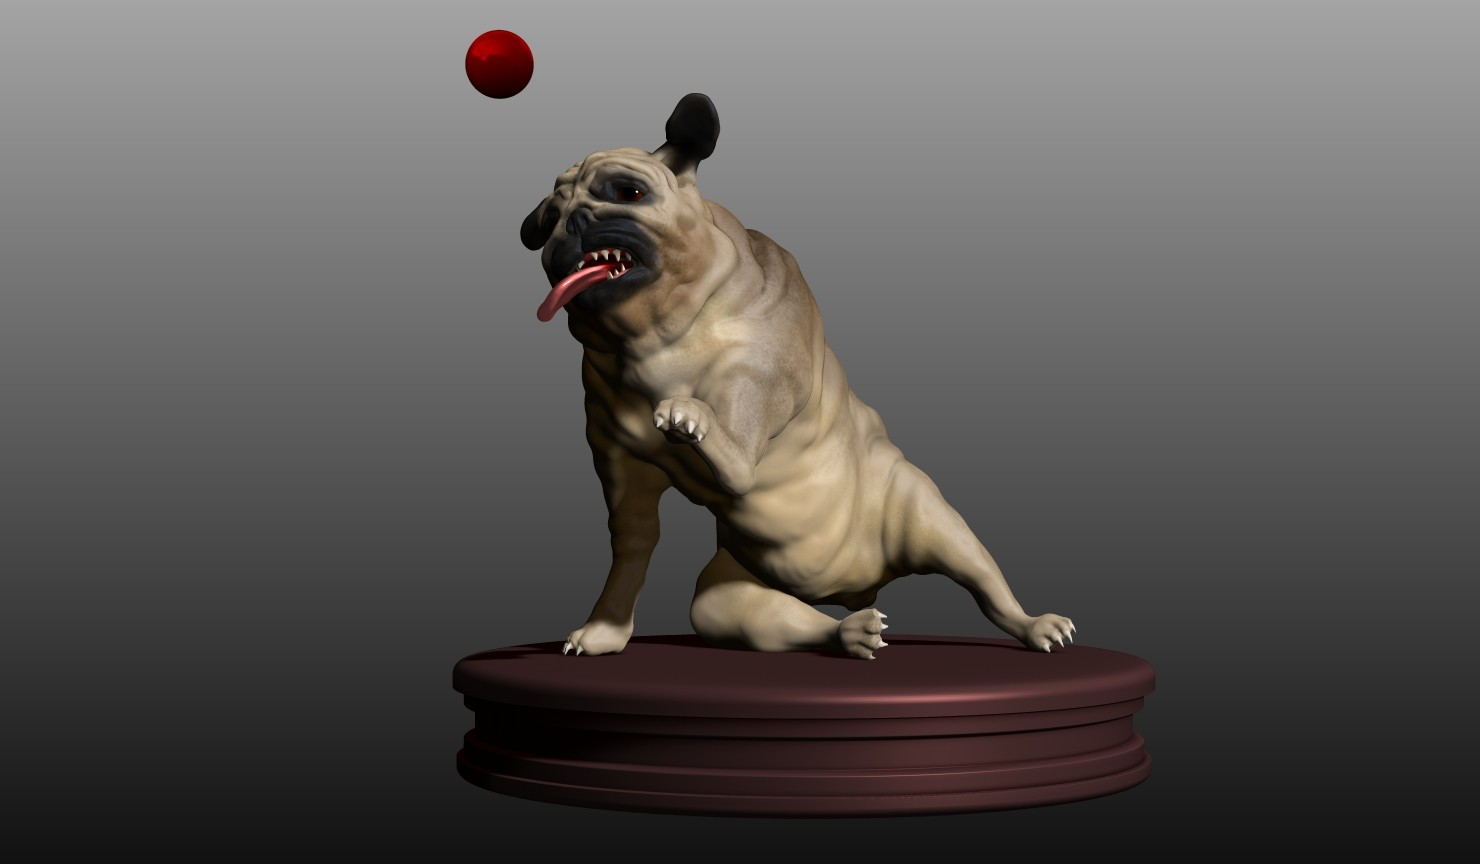 Participated in a speedsculpt competition. The task was to sculpt a dog. This is my entry.